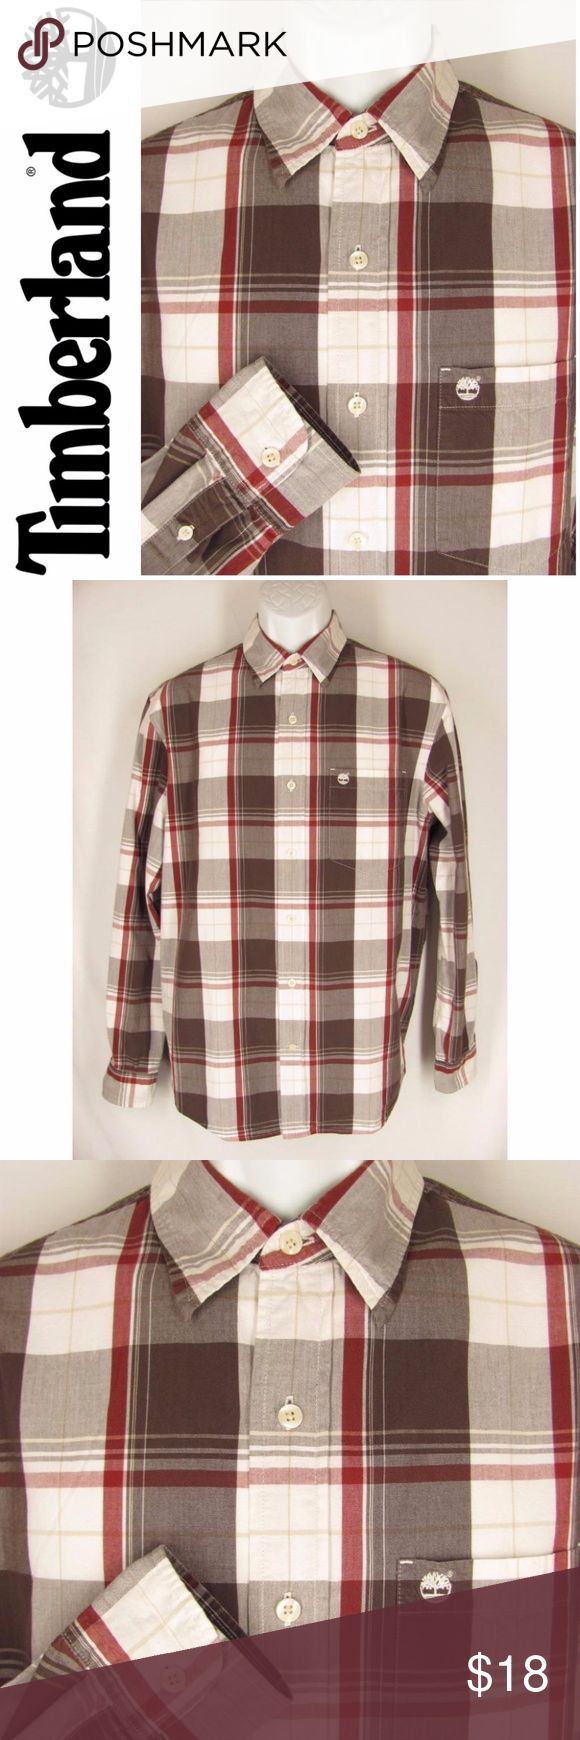 "Timberland Shirt Mens M Plaid Cotton Long Sleeves Timberland mens casual shirt, size Medium. This handsome shirt is 100% cotton in a rugged white, brown and rust colored plaid. It's got a pointed collar, button down front, long sleeves, a chest pocket with the Timberland logo and a back pleat. Very Good Gently Pre-Loved condition!  22 1/2"" across chest 22 1/2"" across at the hem 24 1/2"" from shoulder seam to bottom of sleeve 33 1/4"" length  10x14 170703-214-9 Timberland Shirts Casual Button…"